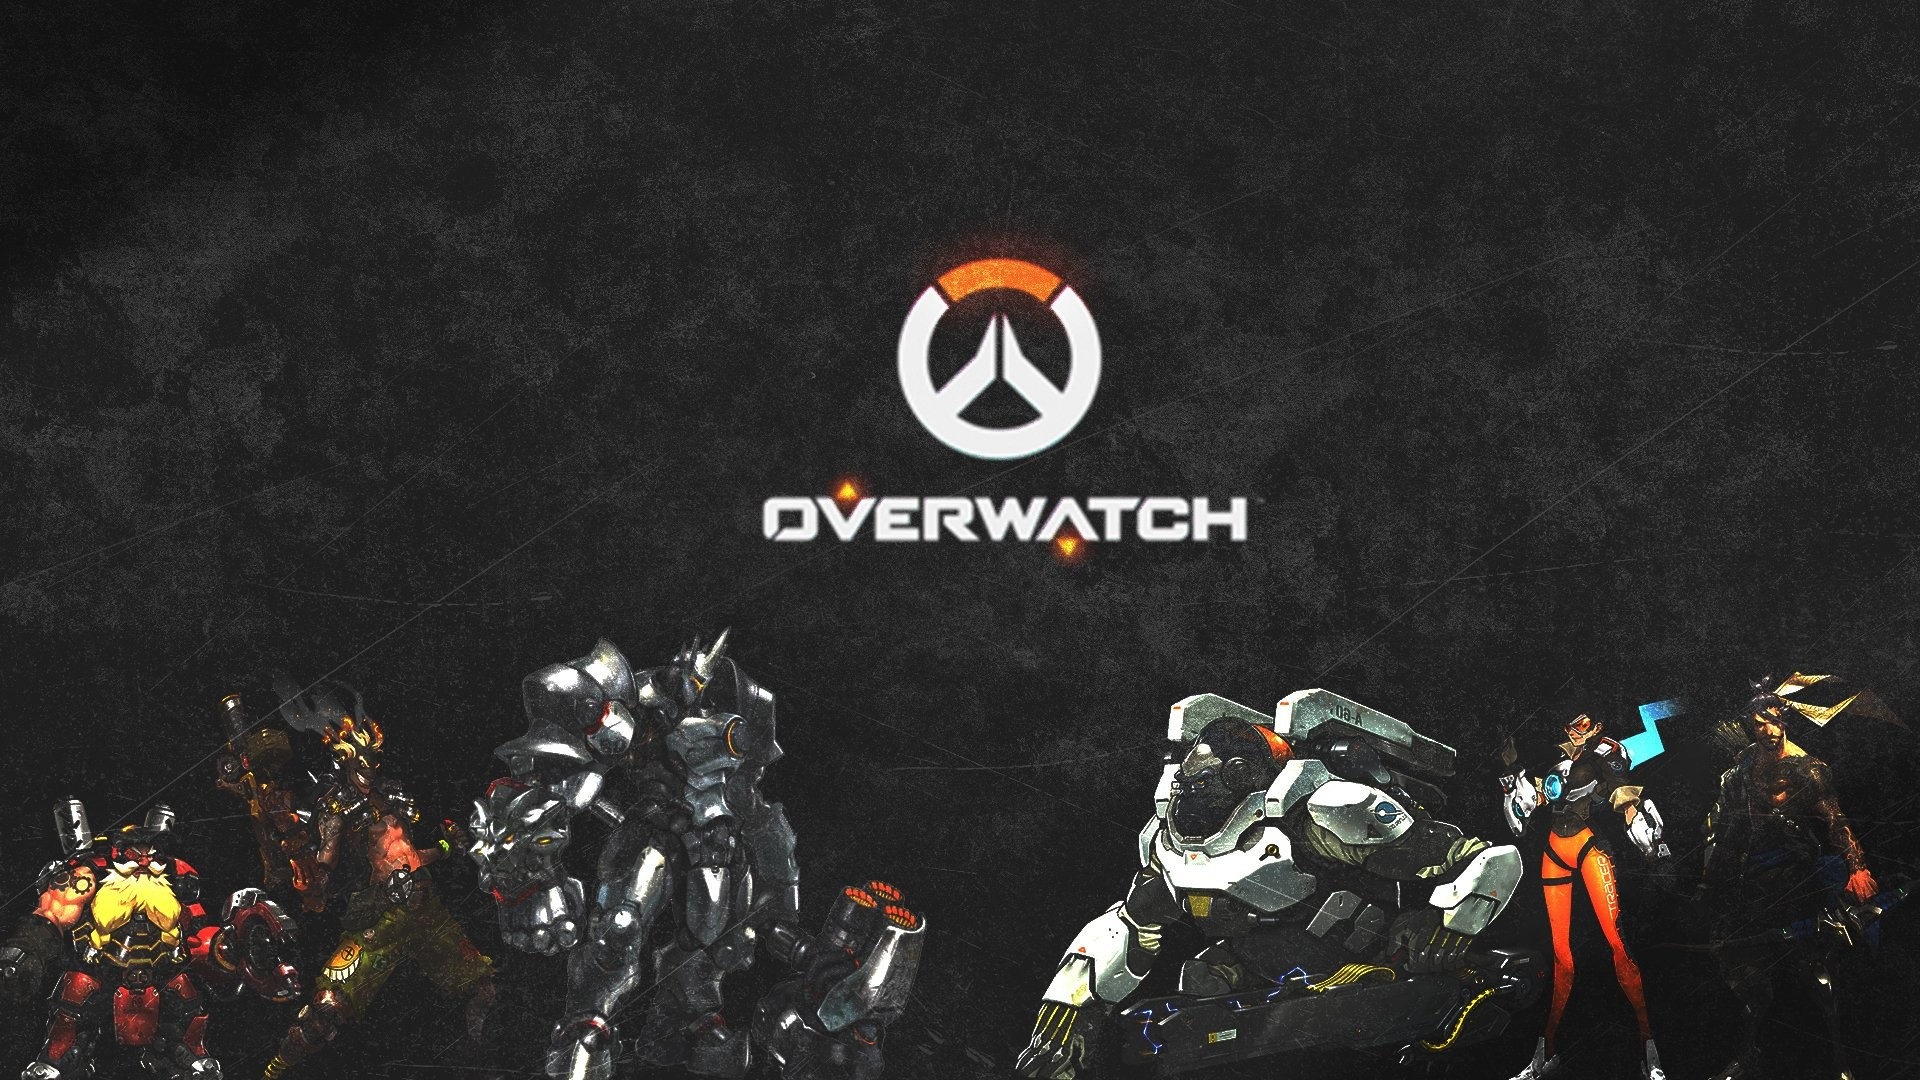 Overwatch Wallpaper HD ·① Download Free Beautiful HD